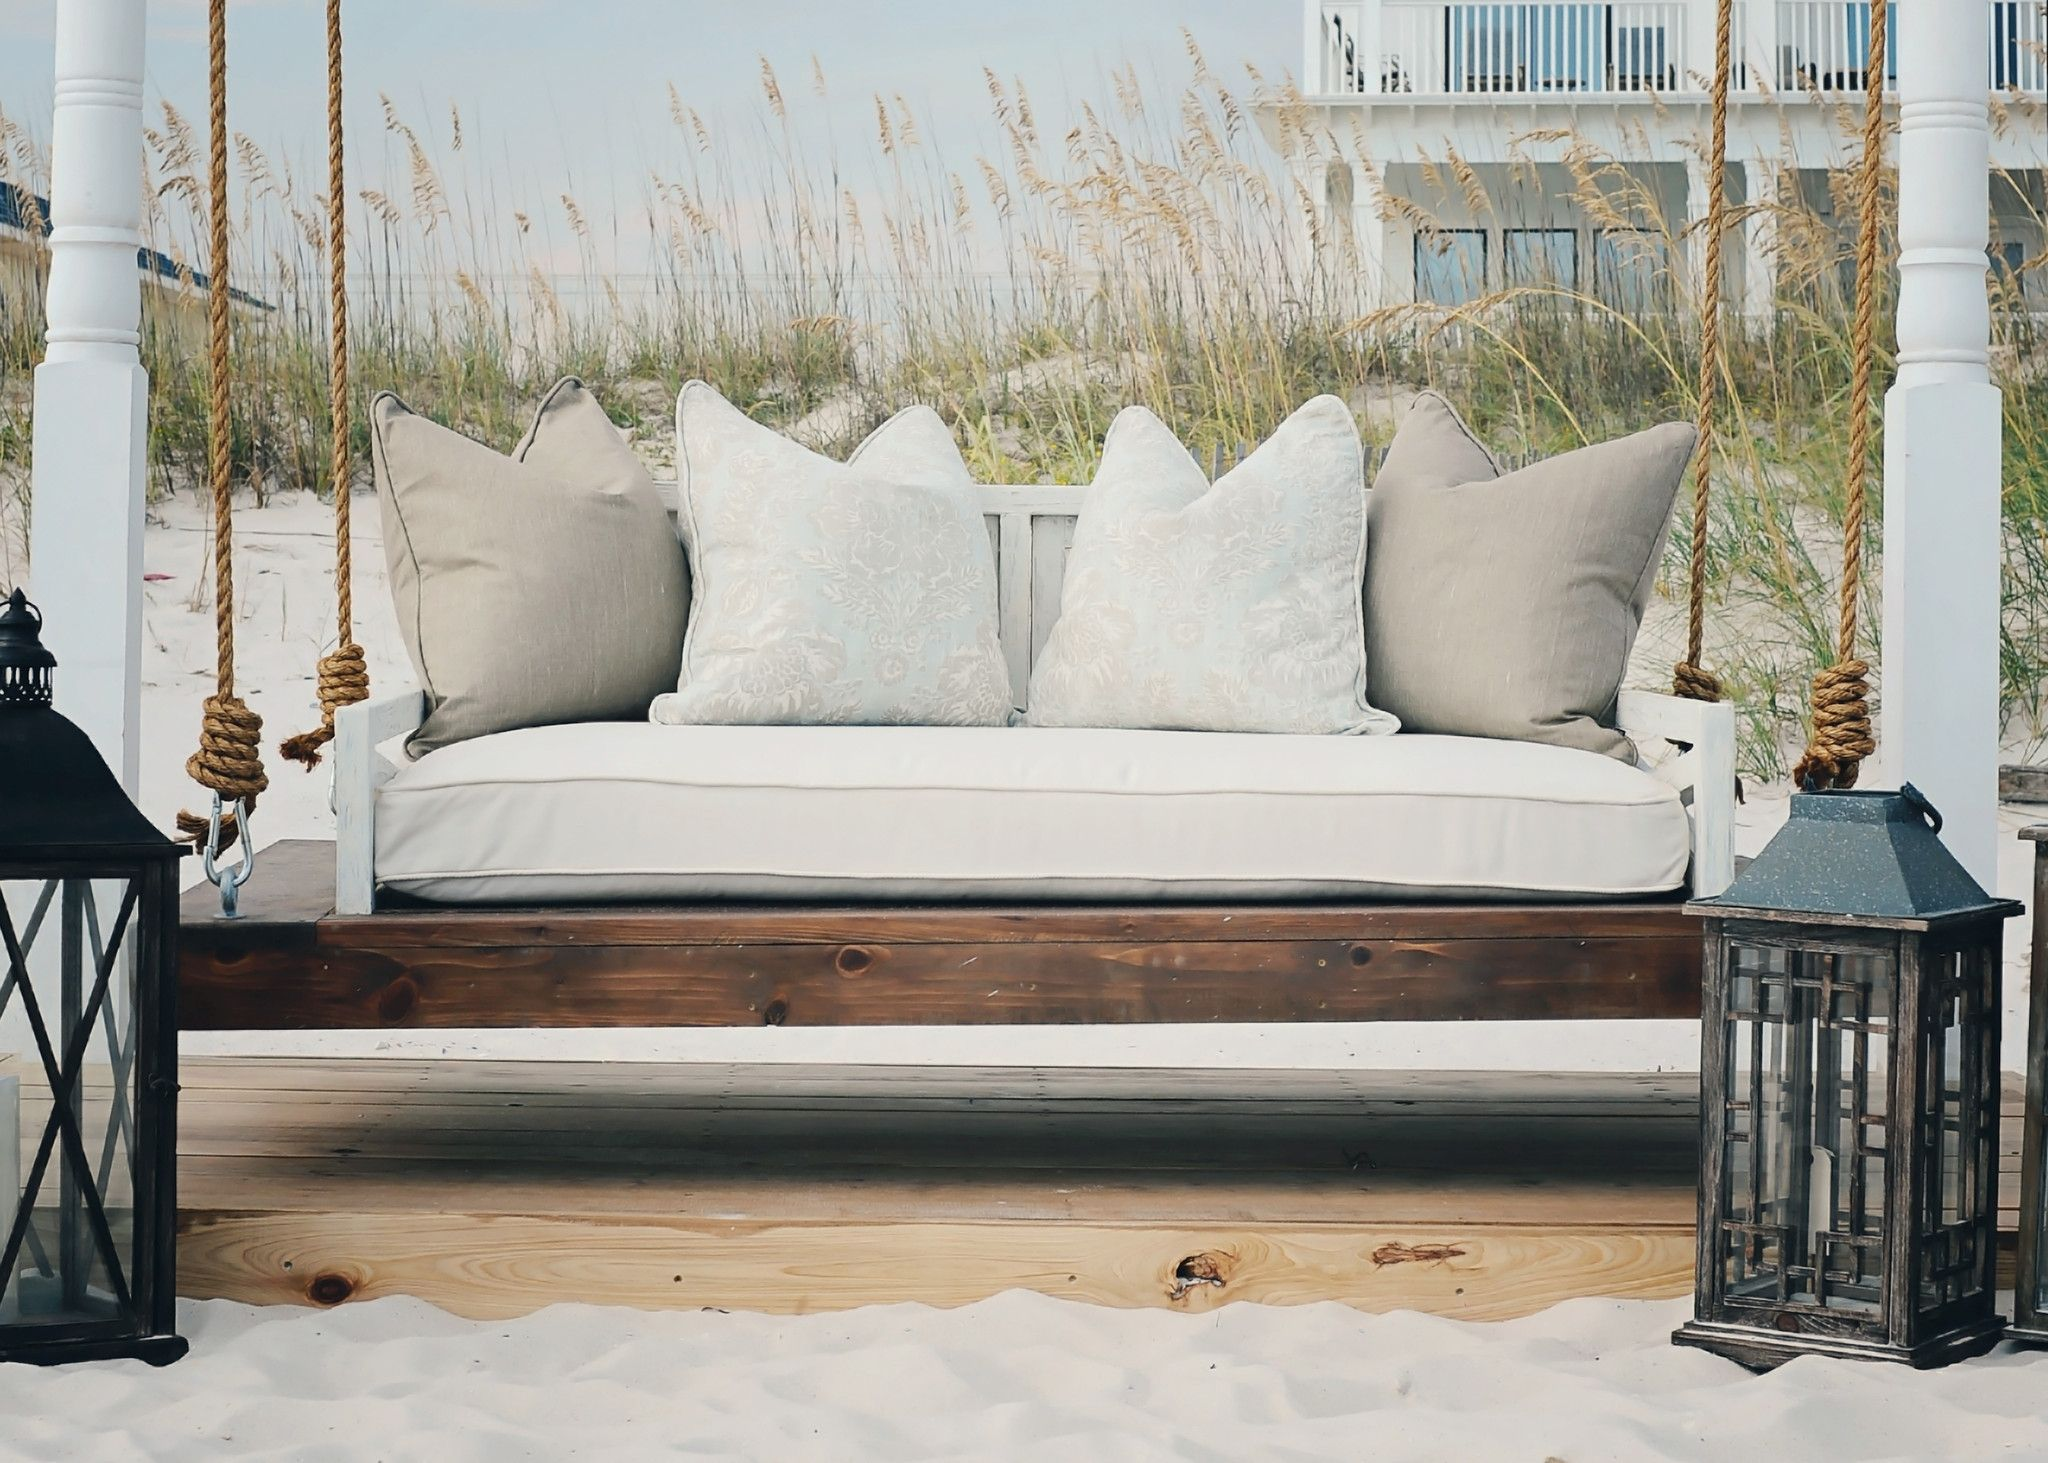 Lounge bed swing chair productcreationlabs pinterest